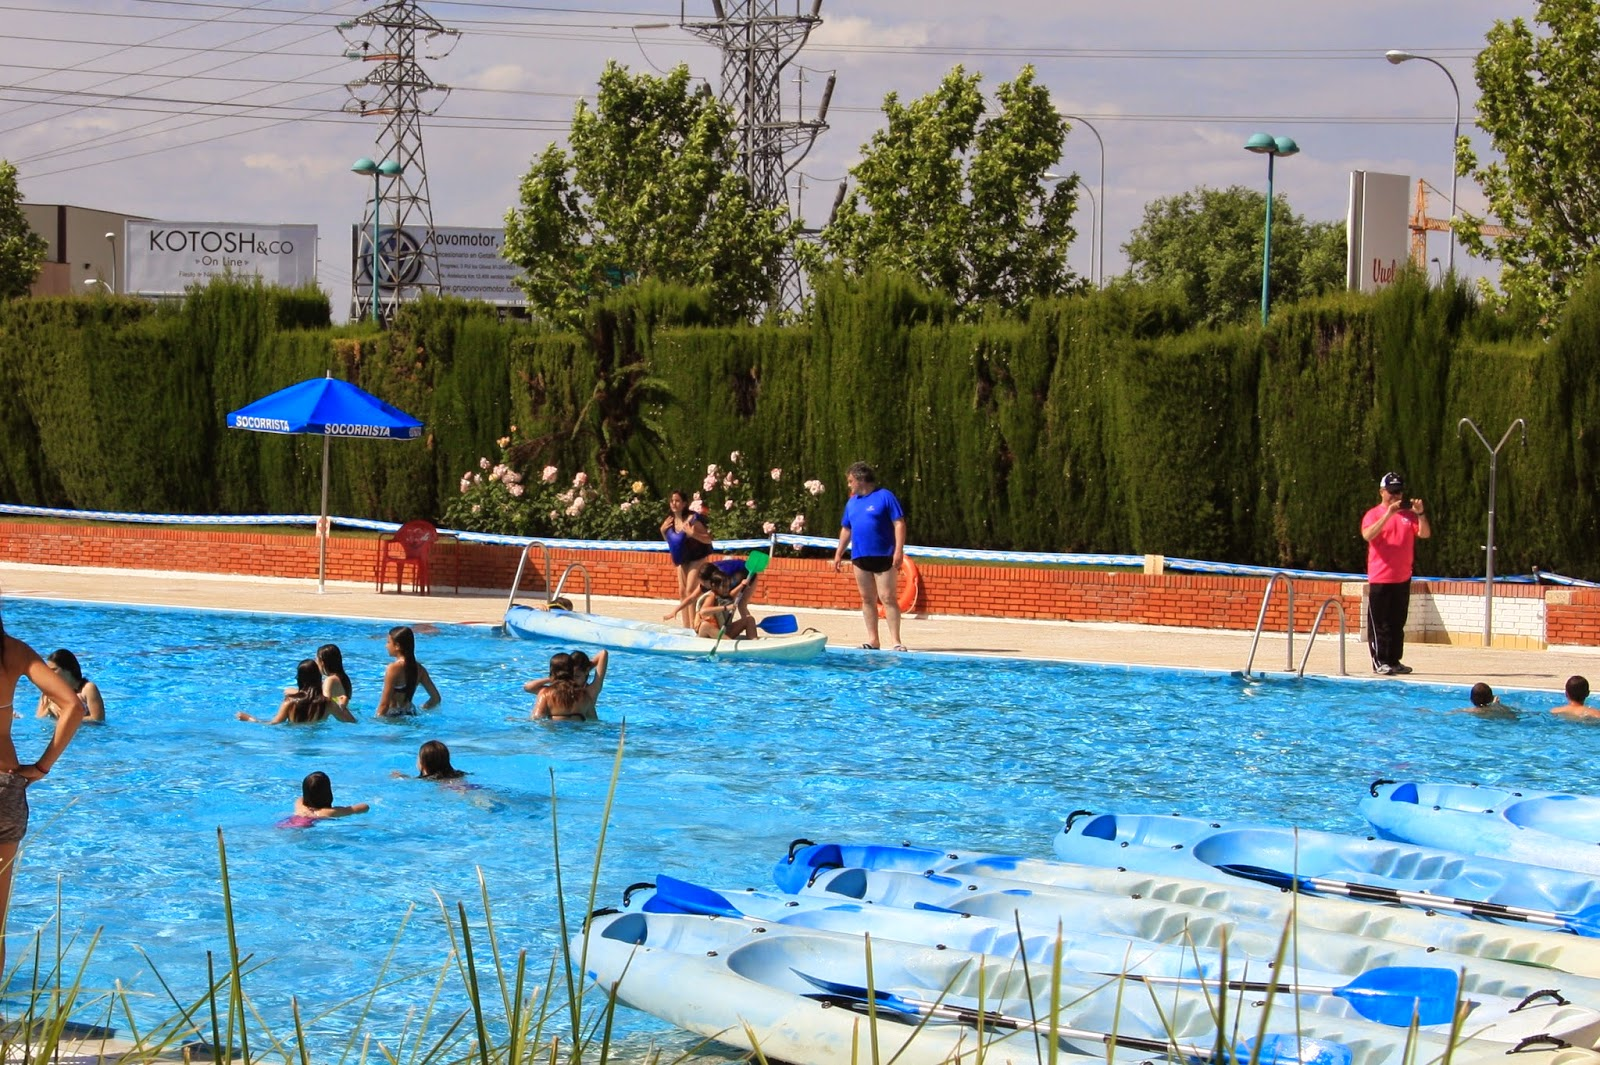 Adjudicaci n del kiosco de la piscina de la alh ndiga for Piscina getafe